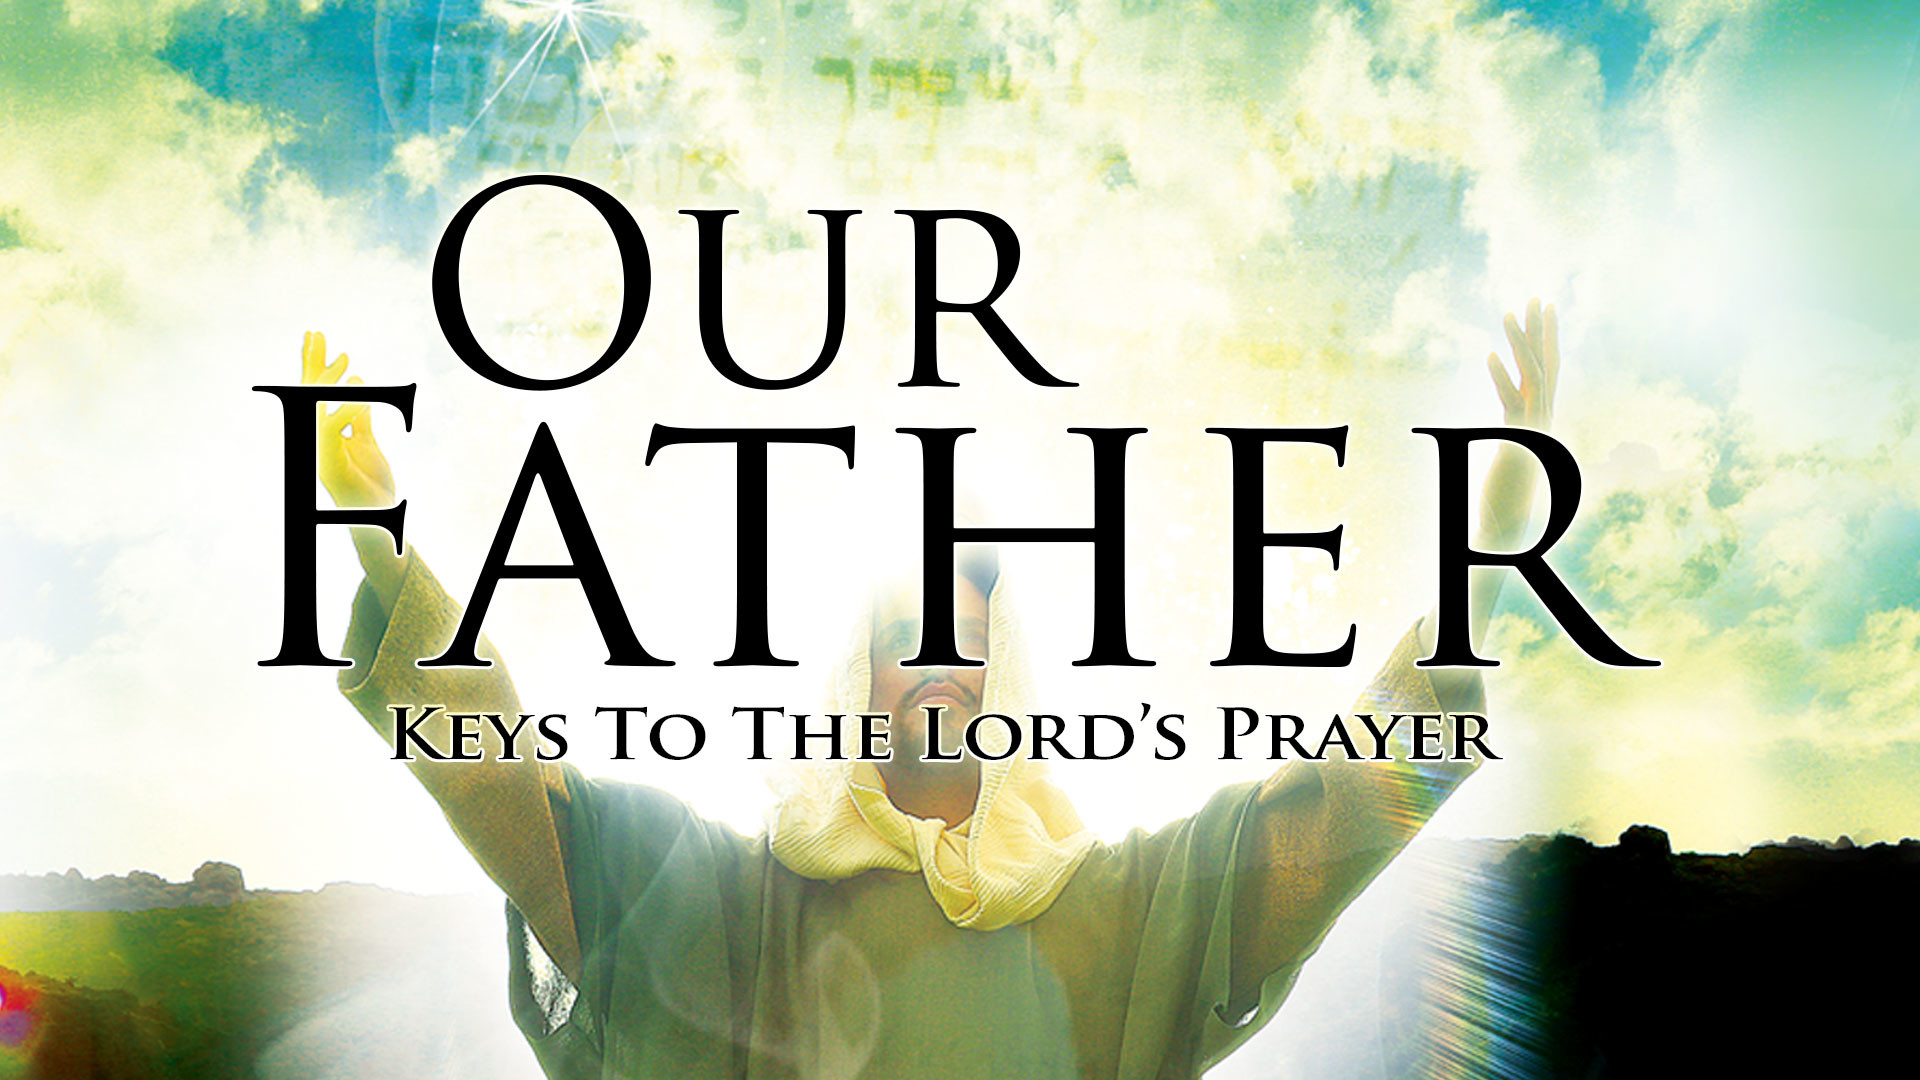 a prayer to the lord Psalms 118:1 oh, give thanks to the lord , for he is good for his mercy endures forever for his mercy endures forever i thessalonians 5:16-18 rejoice always, pray without ceasing, in everything give thanks for this is the will of god in christ jesus for you.